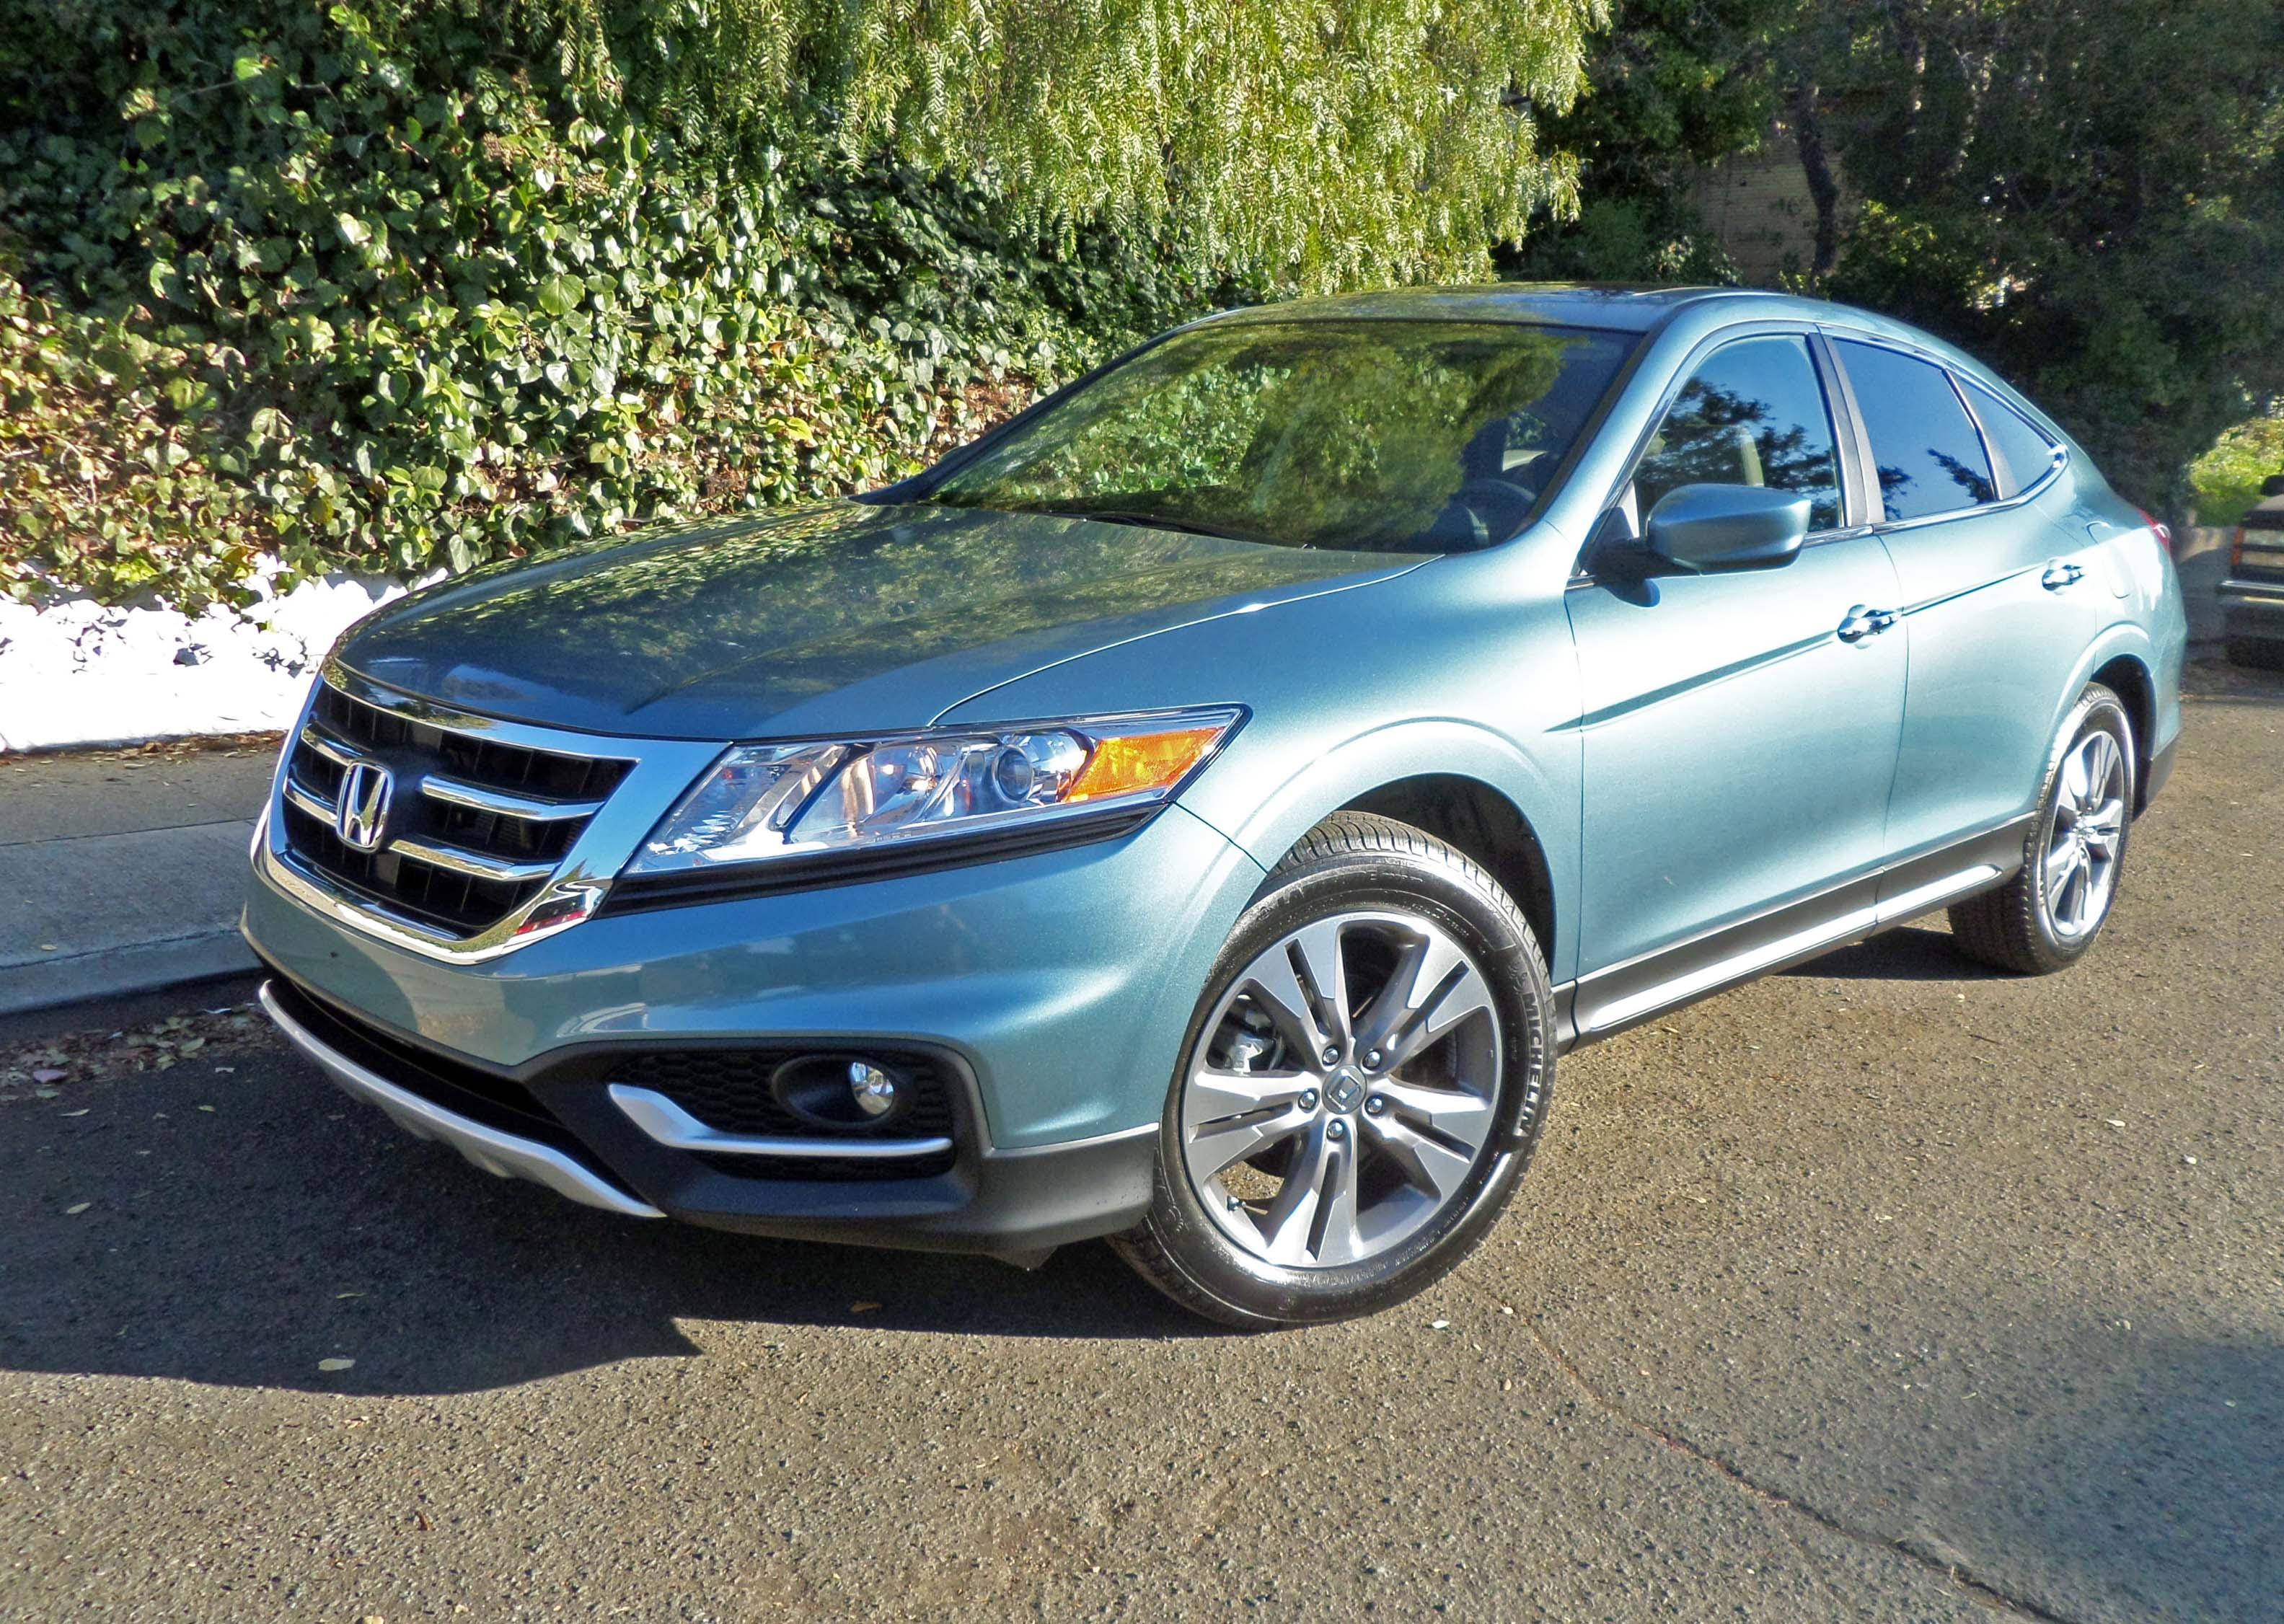 2014 honda crosstour ex l v6 awd navi test drive our auto expert. Black Bedroom Furniture Sets. Home Design Ideas